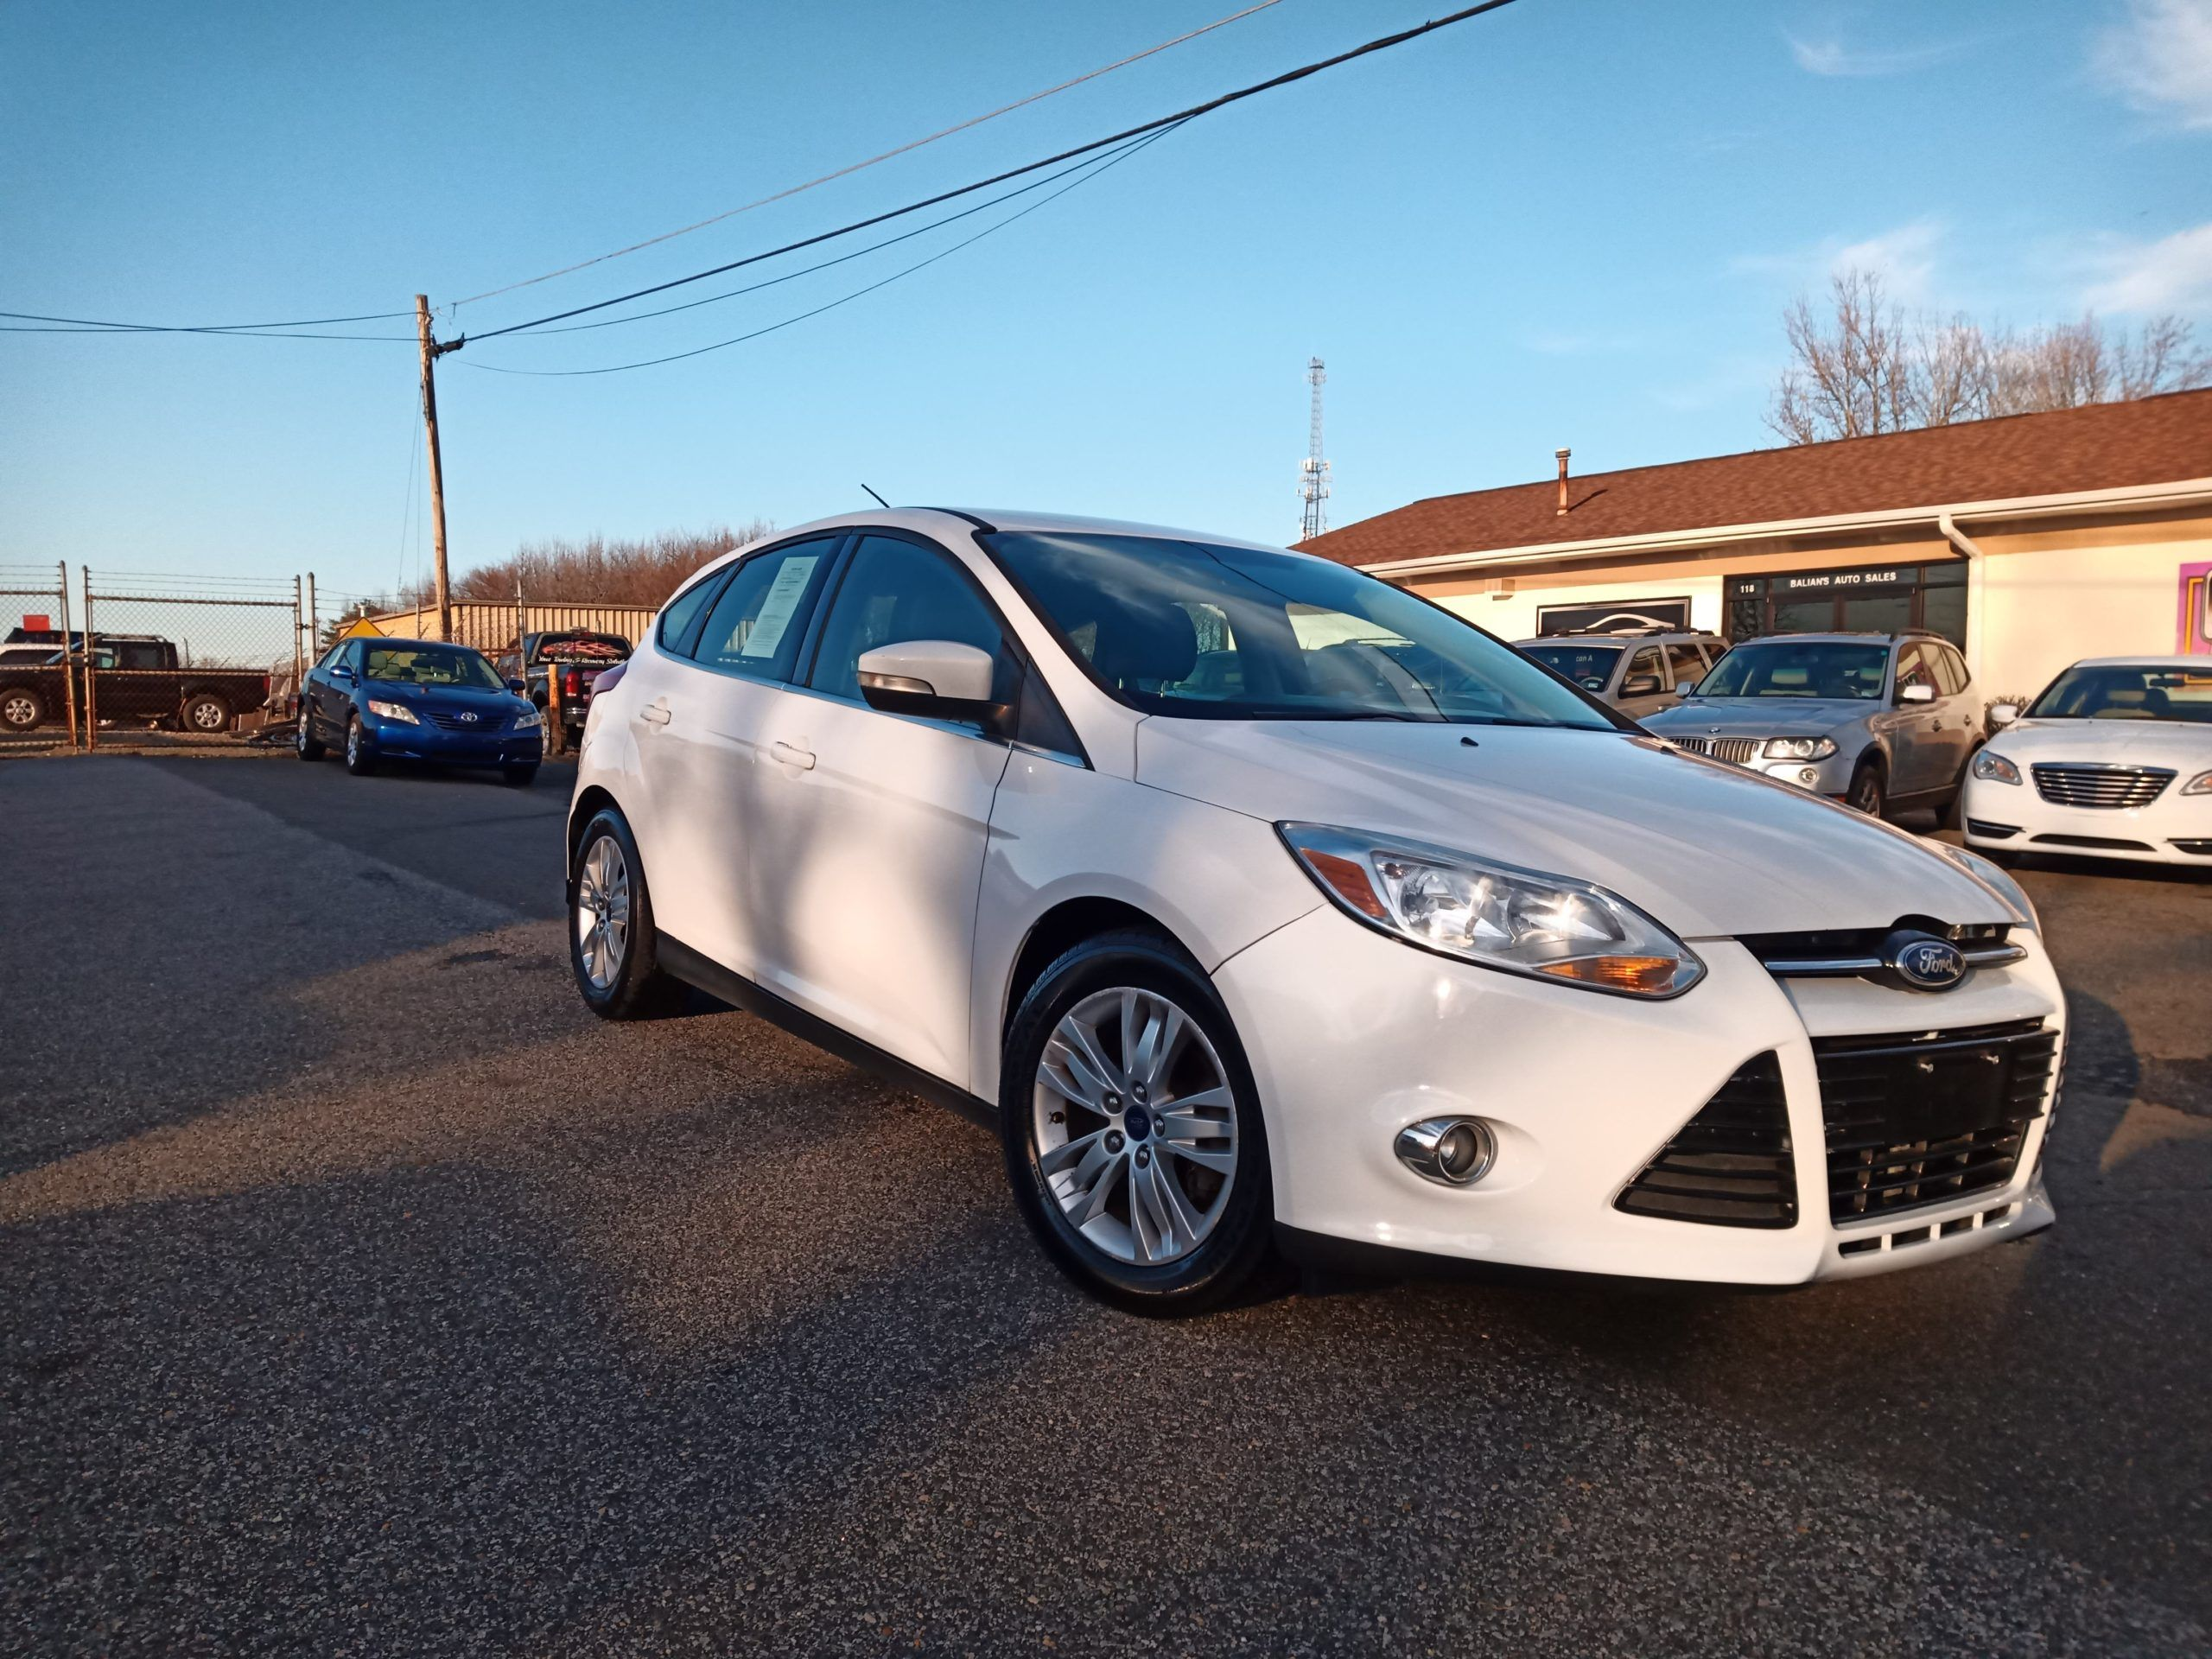 This Vehicle Is Available For Sale Ford Focus Hatchback 2012